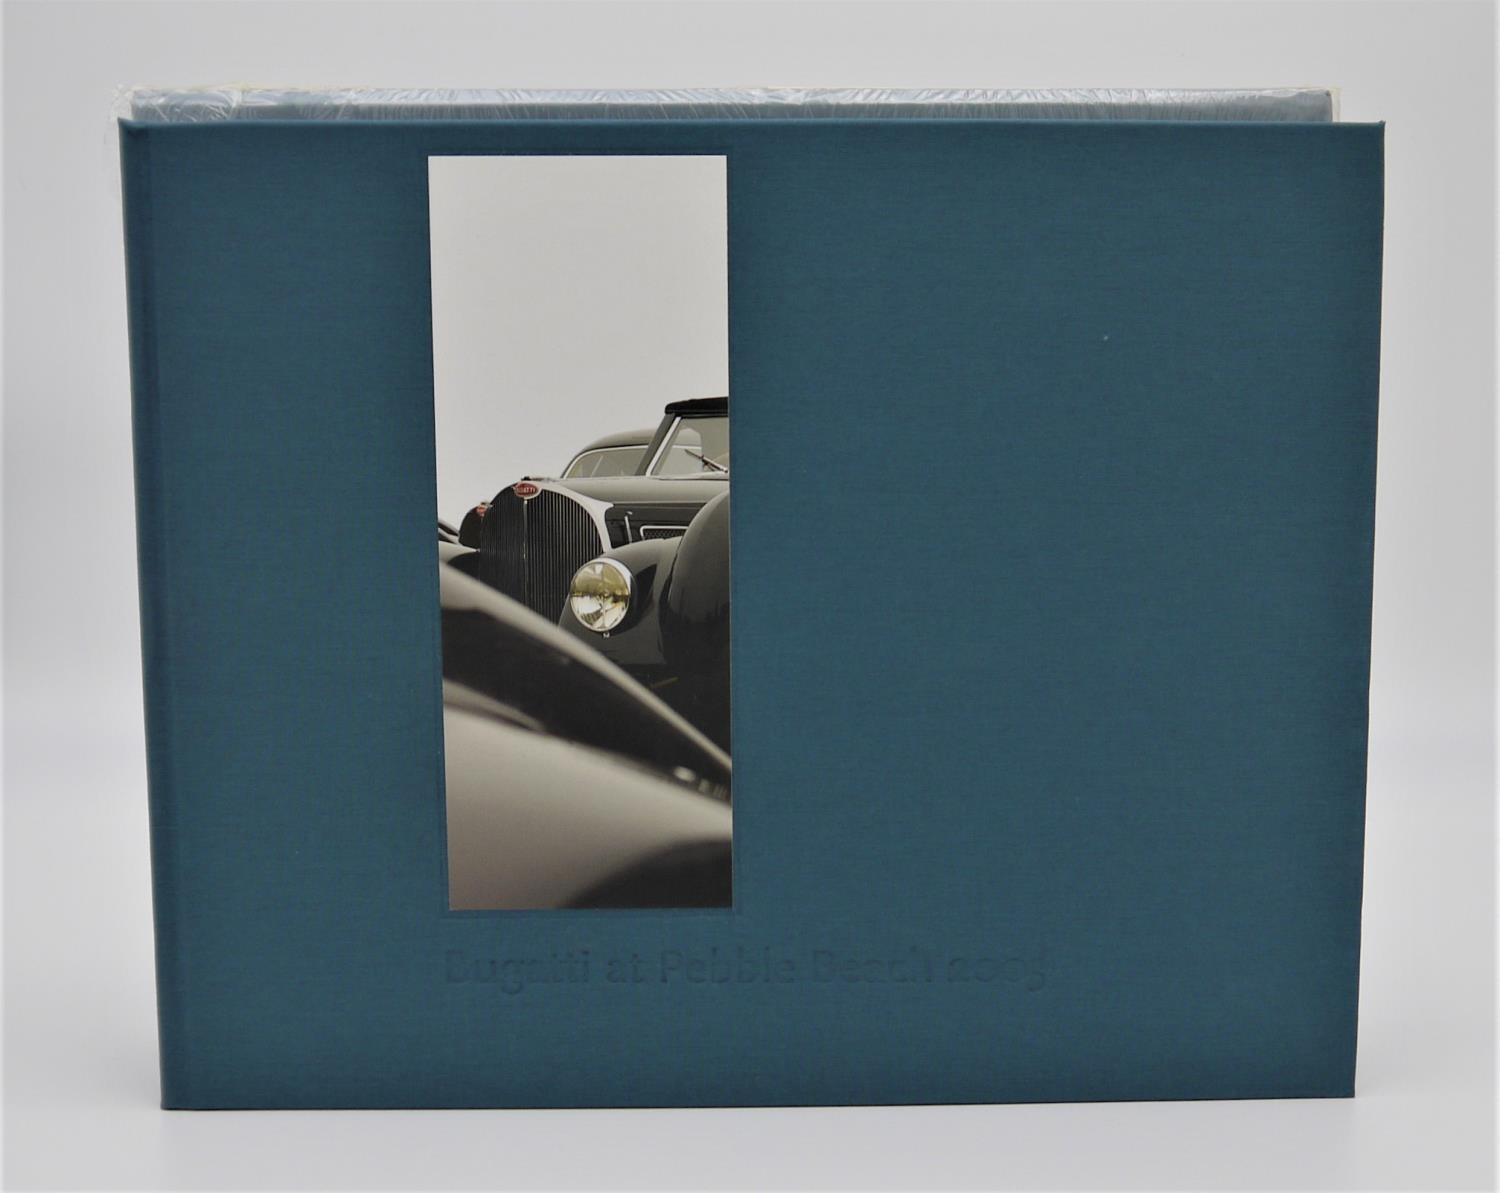 BUGATTI AUTOMOBILES: BUGATTI AT PEBBLE BEACH 2003 with numerous photographs, this book details the - Image 2 of 2